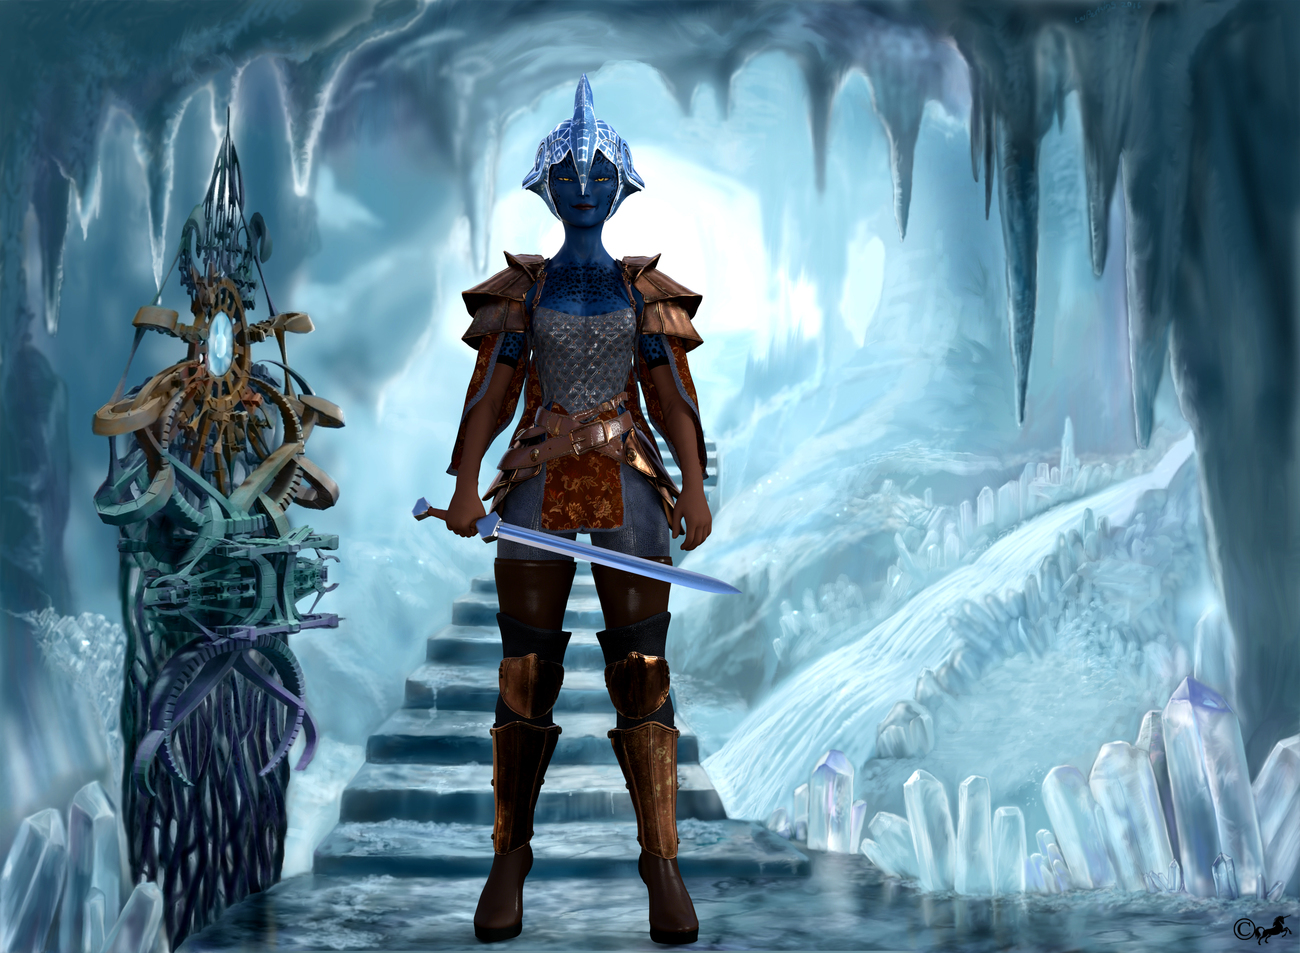 DAZ 755 or Warrior of the Ice Queen by miwi